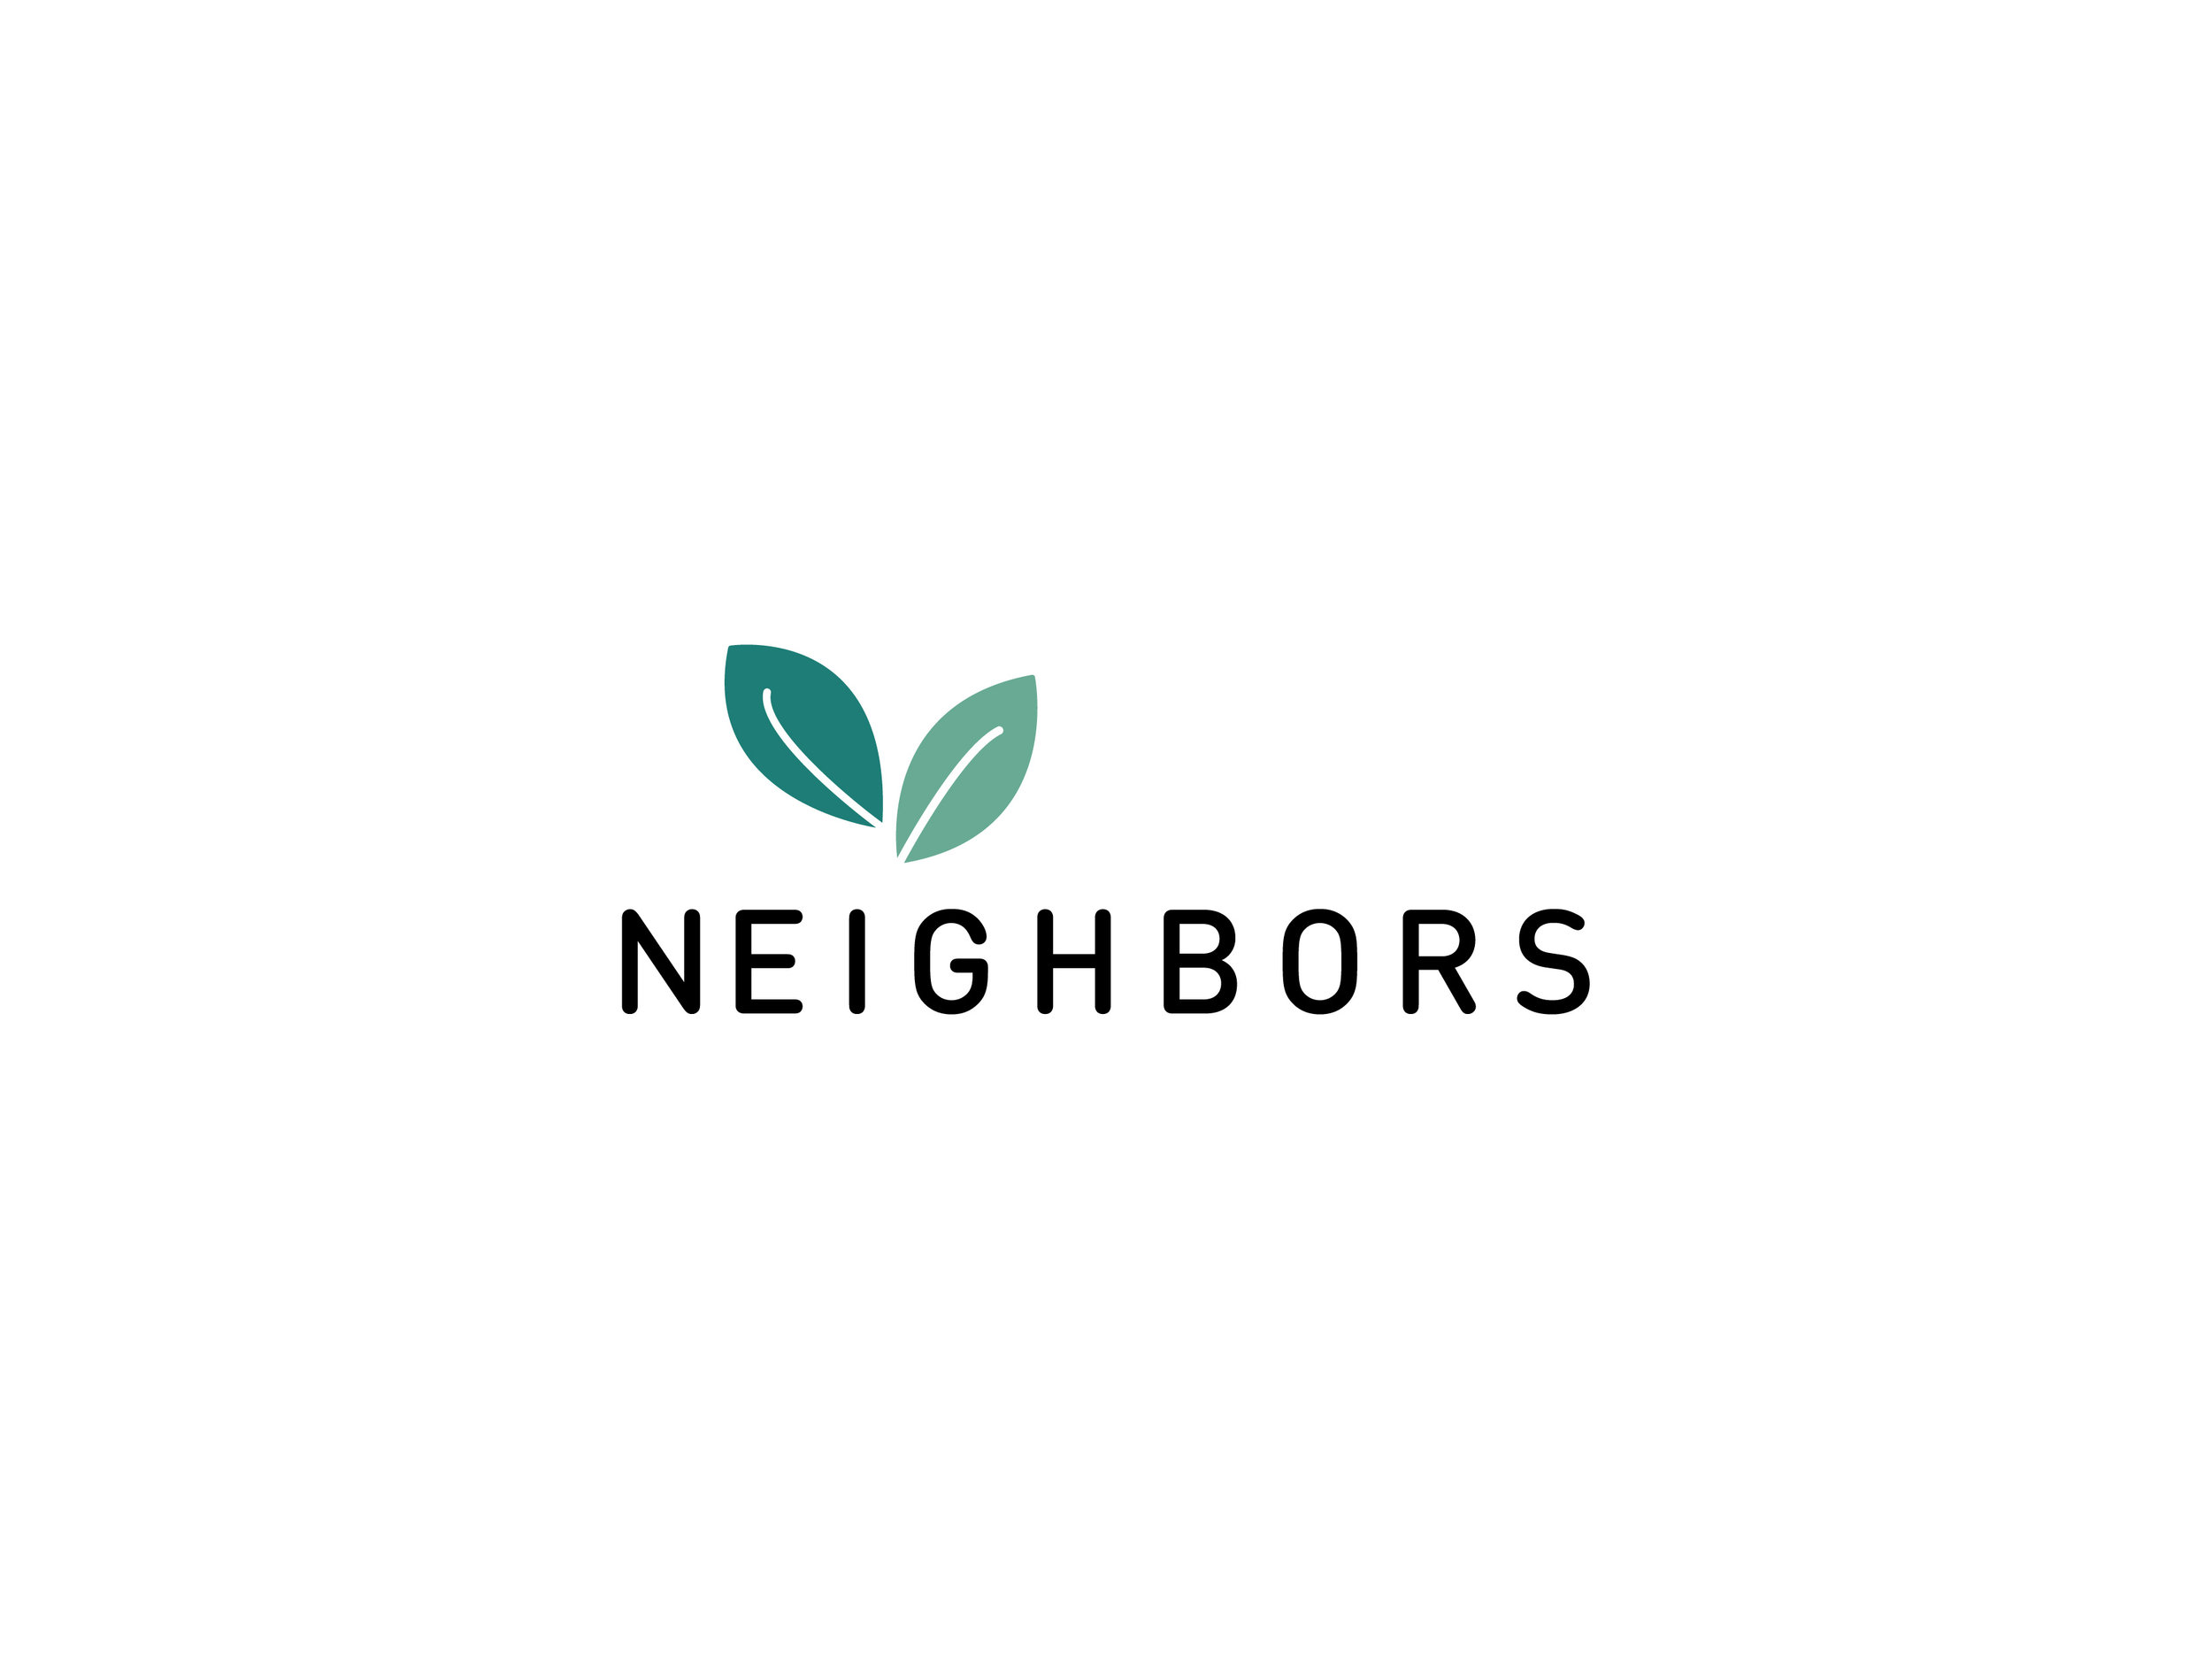 NeighborsLogo_Final2-01.jpg